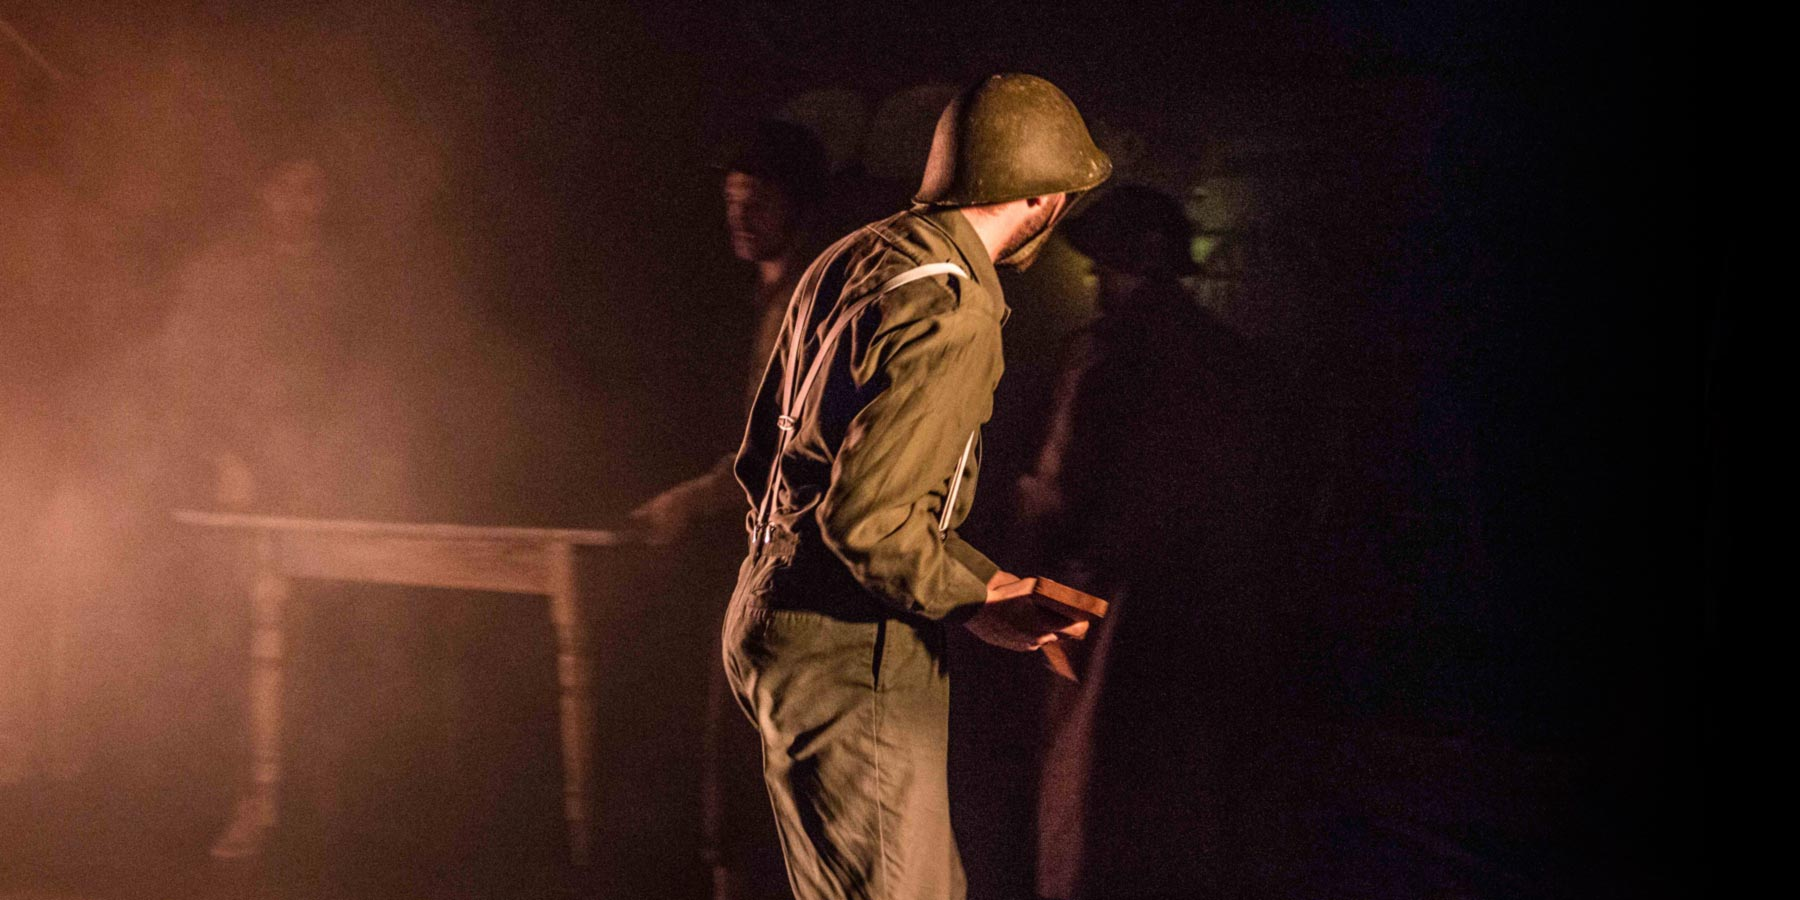 Photograph taken from The Hire man performance at The Iris Theatre